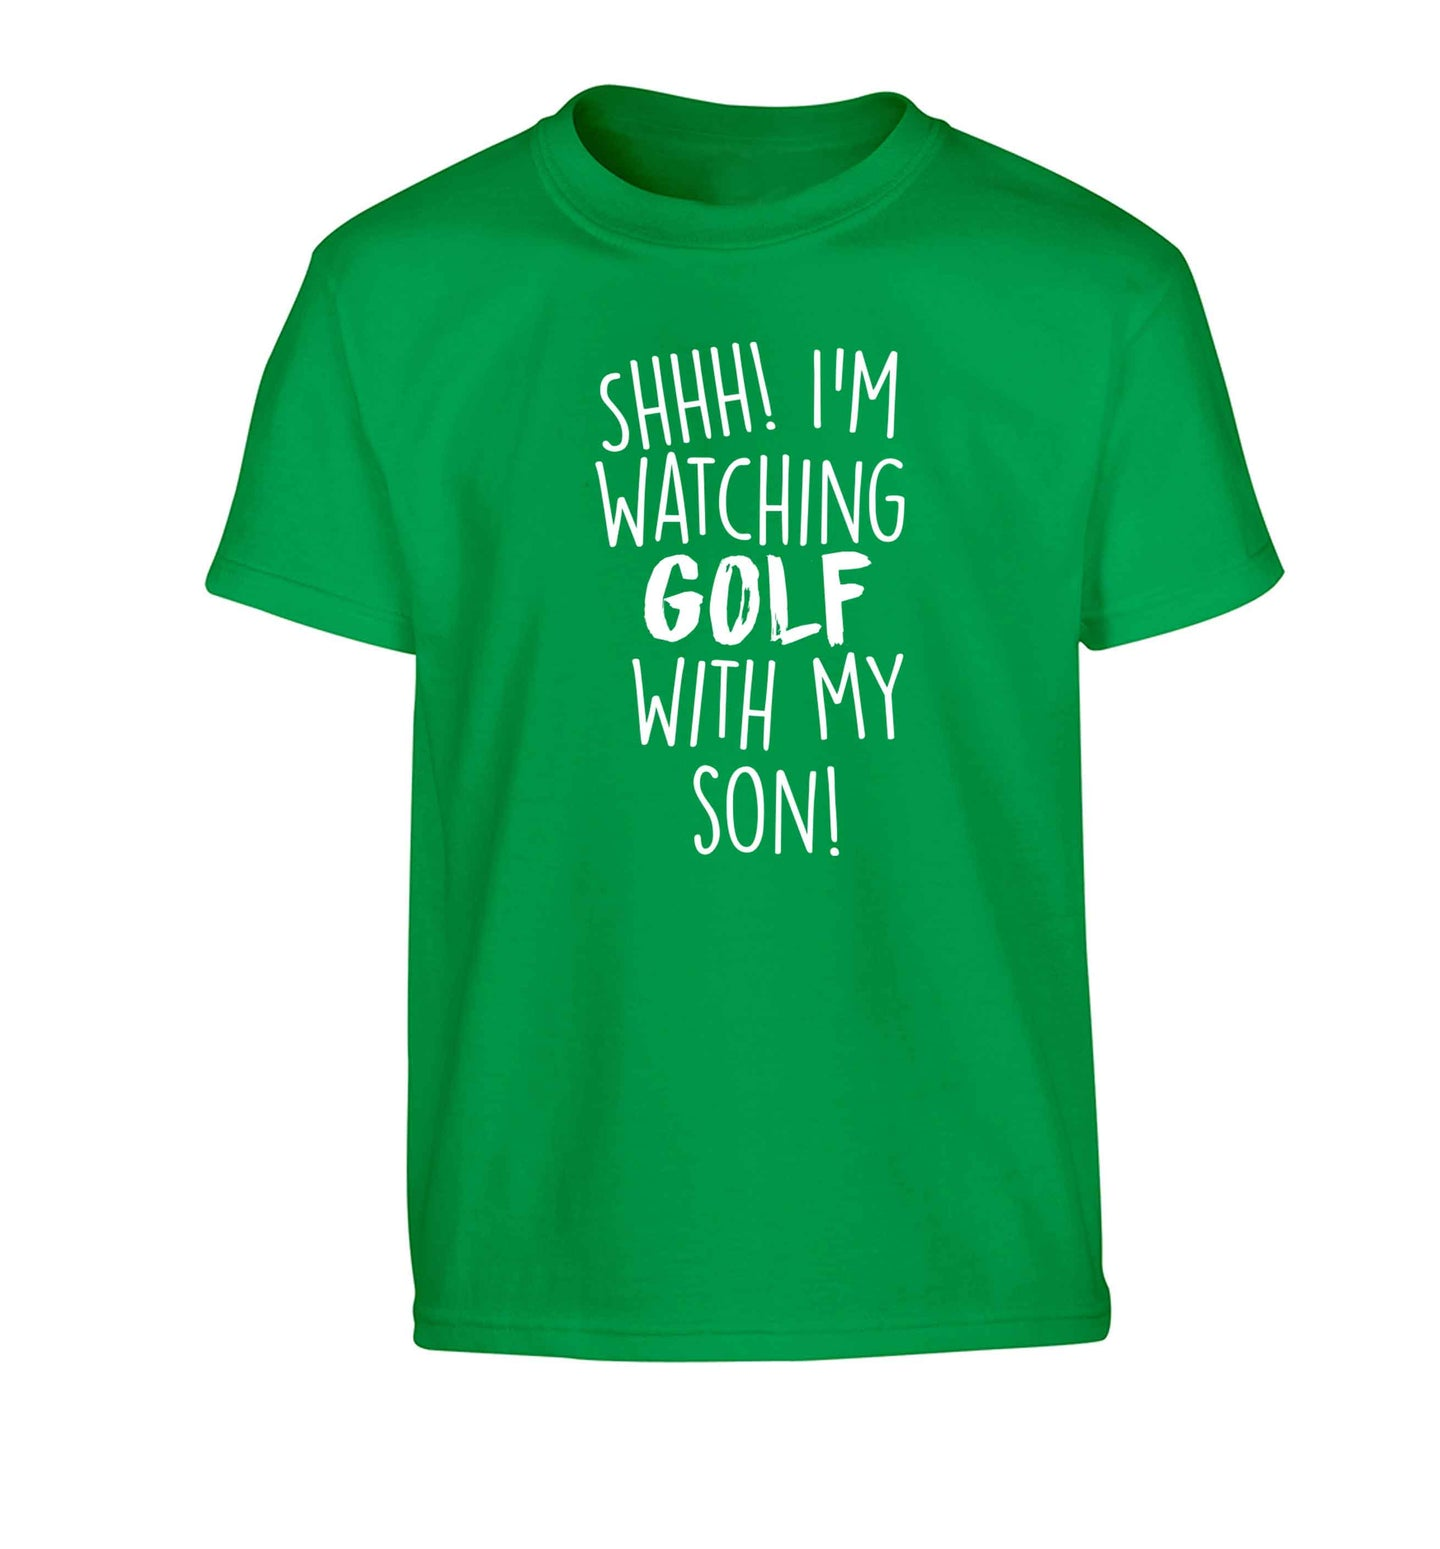 Shh I'm watching golf with my son Children's green Tshirt 12-13 Years